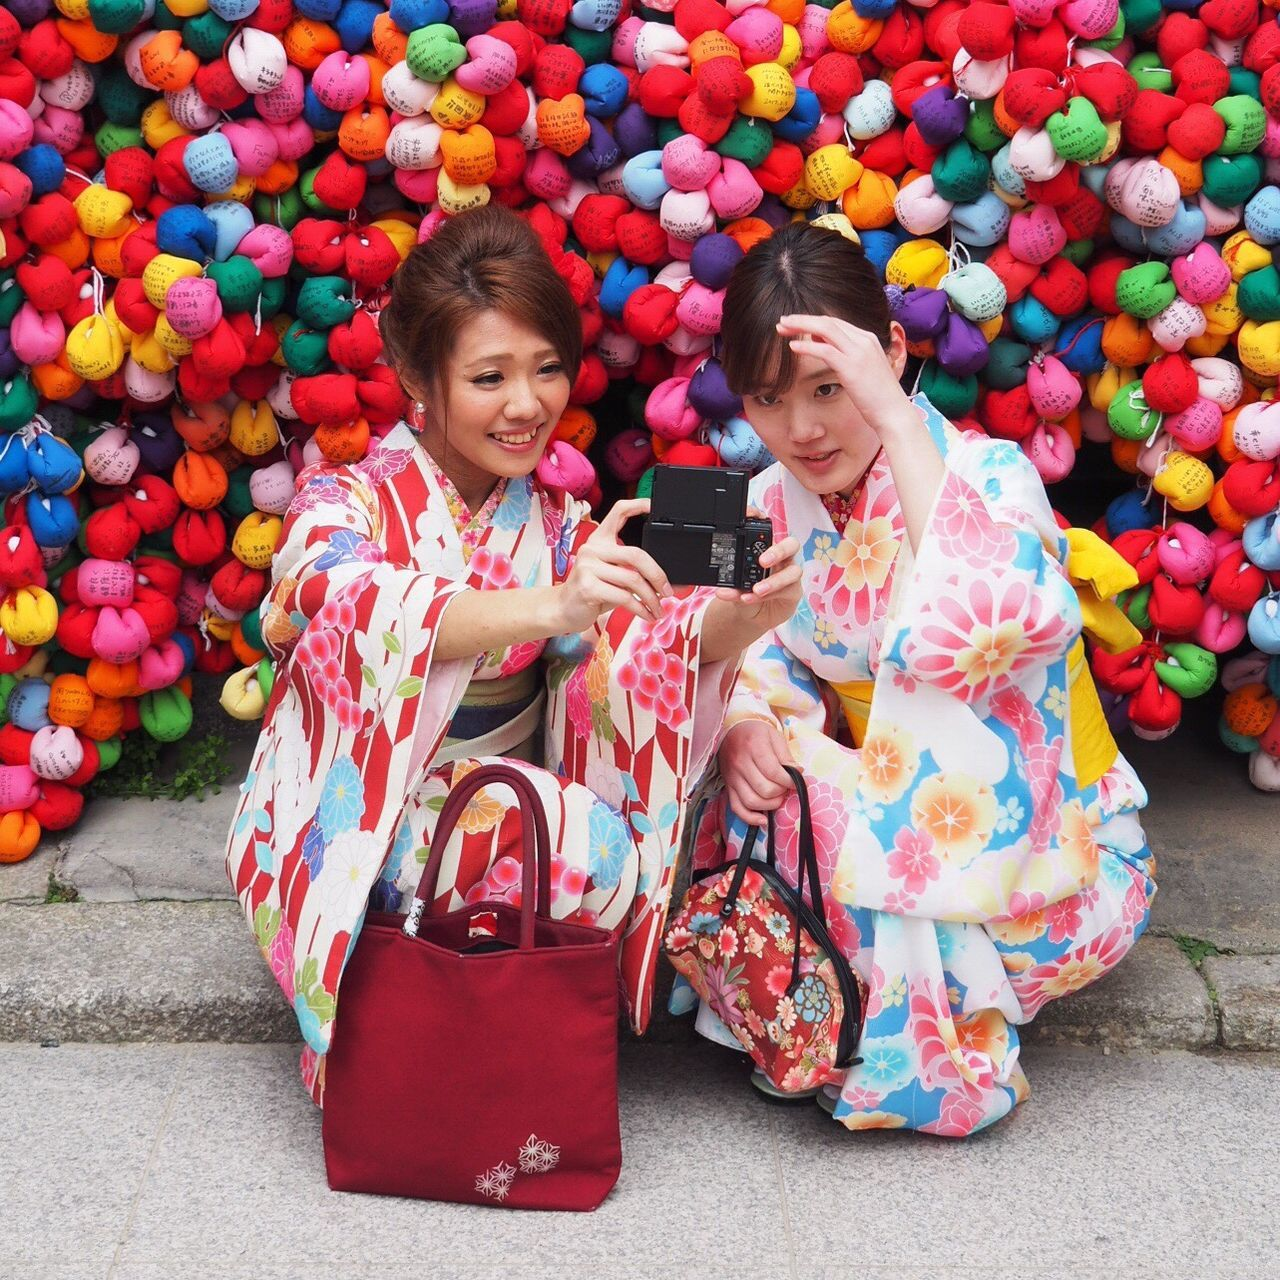 Sharing selfies Two People Girls Smiling Outdoors Females Kimono People Day Adult Temple Selfie ✌ Colorful Kyoto,japan Templegrounds Springtime